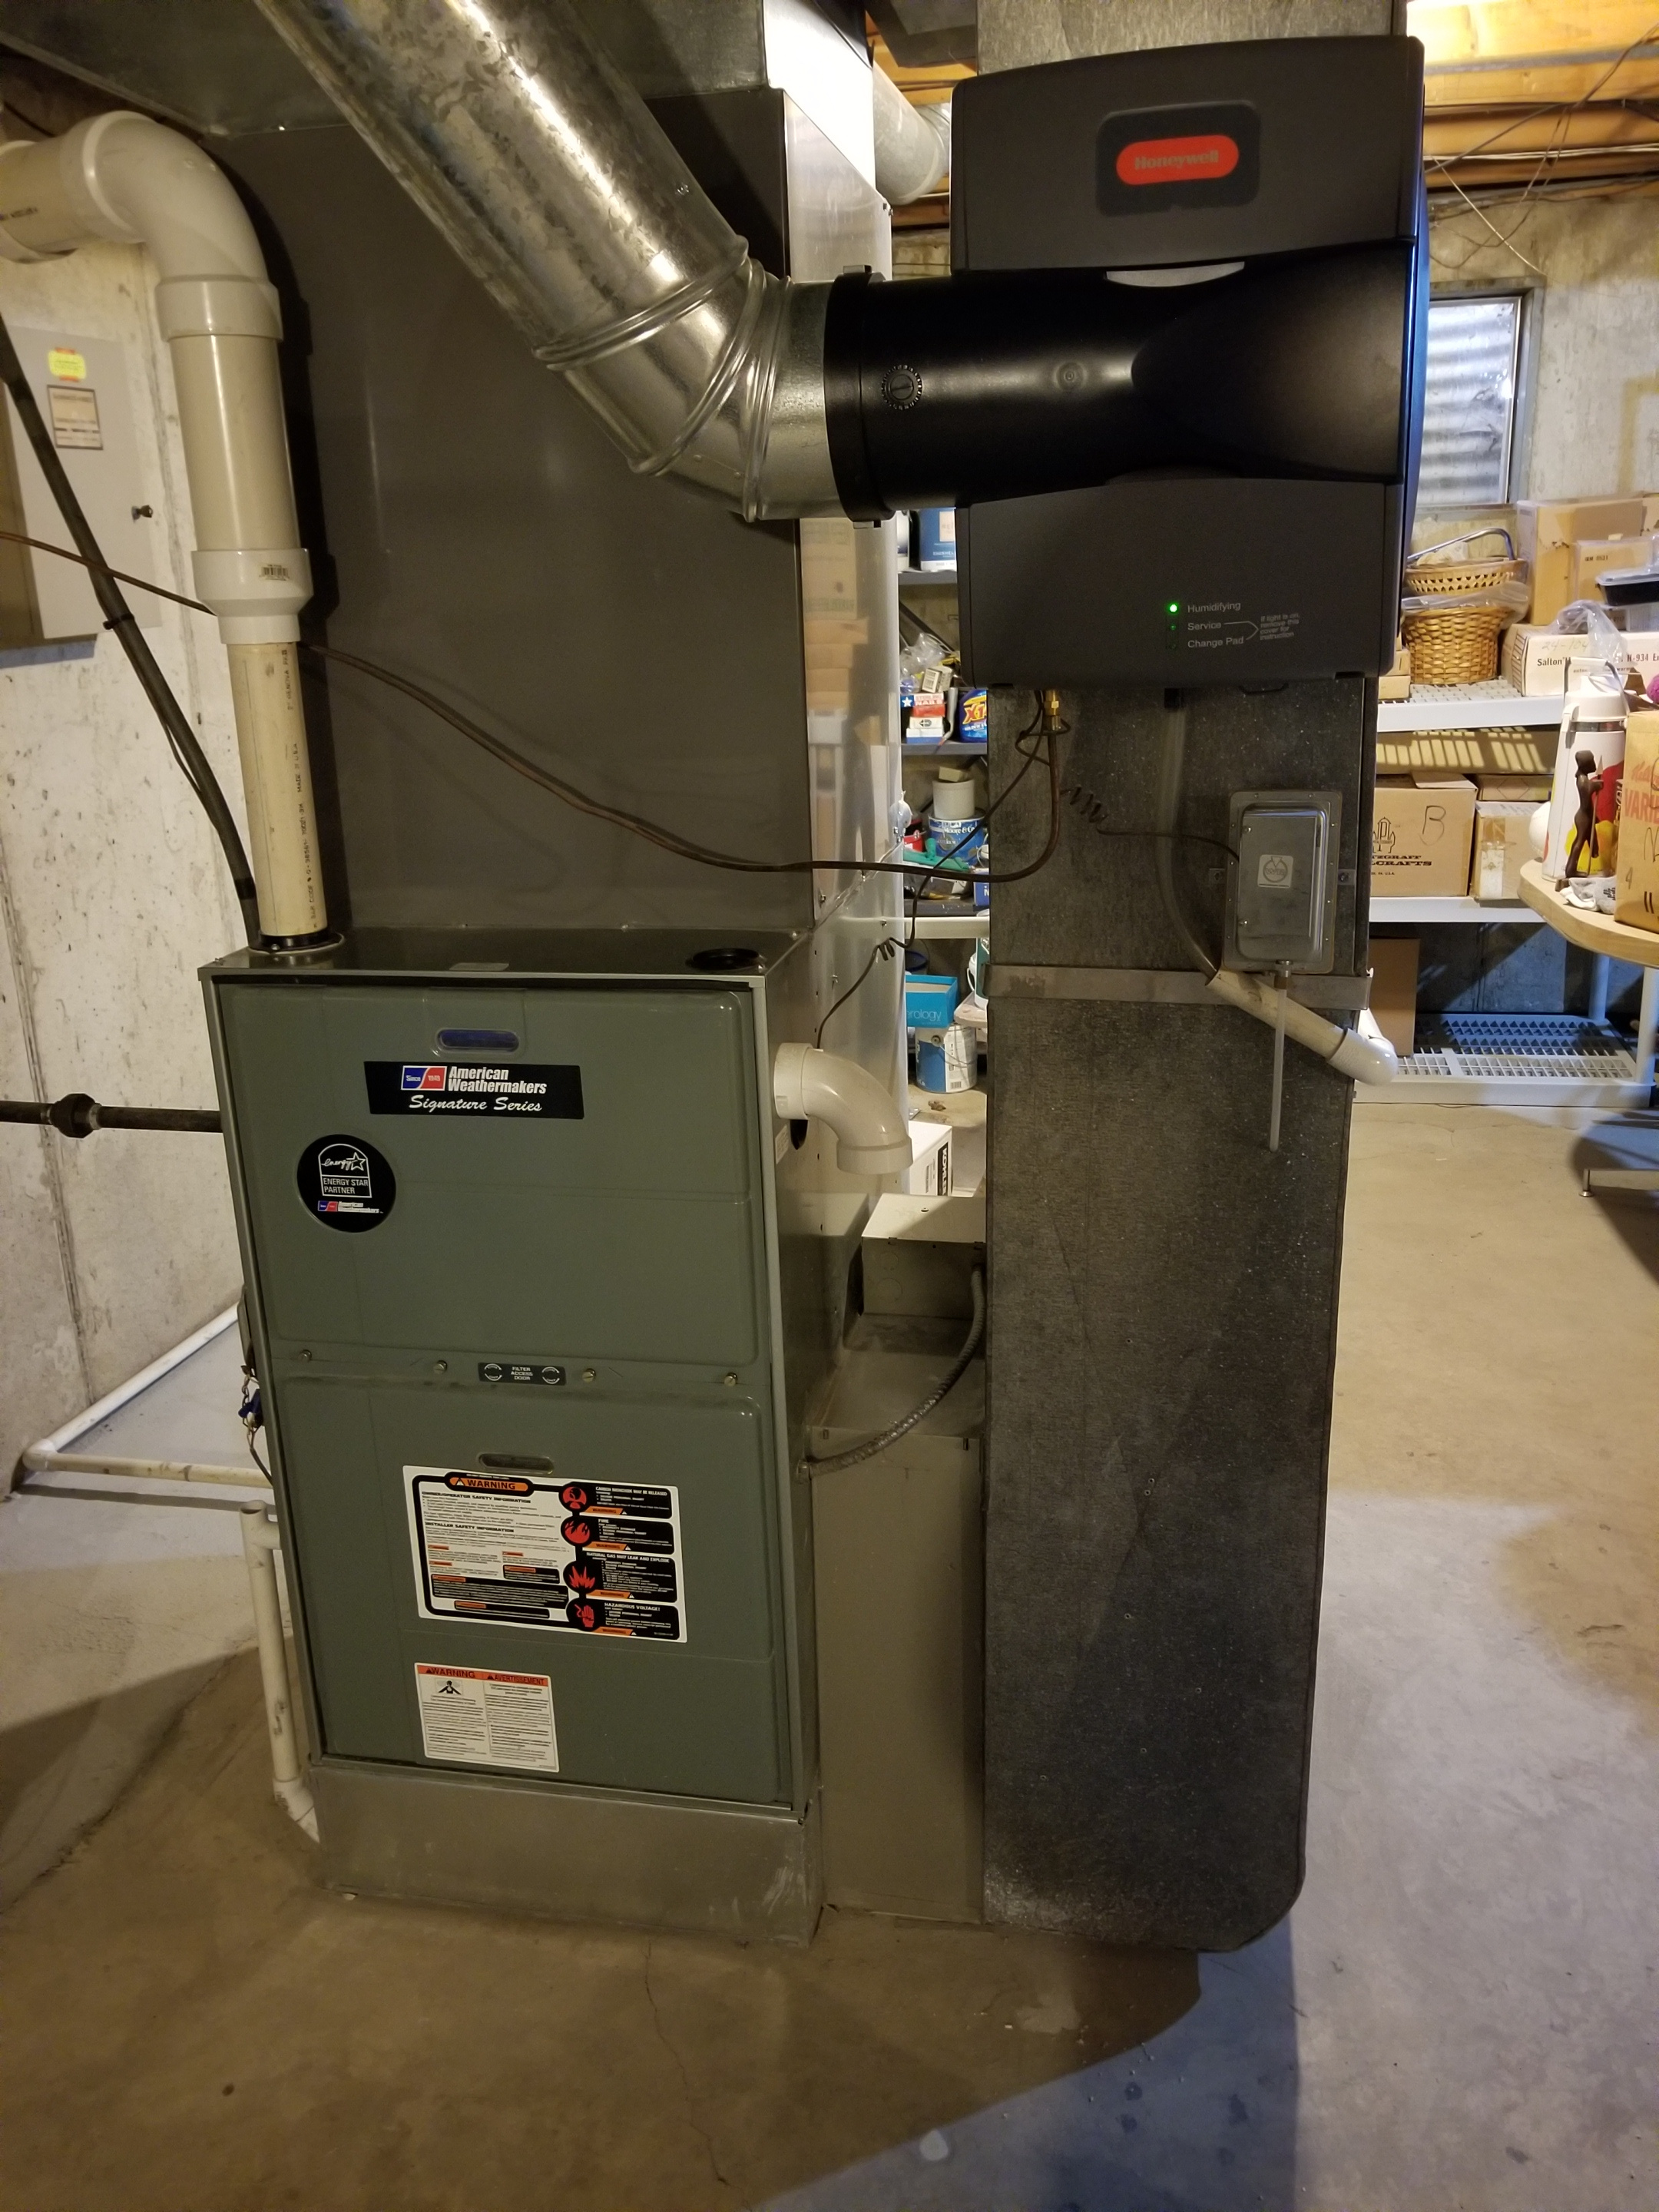 Performed annual maintenance on the American Weathermakers Rheem furnace and Honeywell humidifier and made adjustments to improve the overall efficiency and life expectancy of the equipment